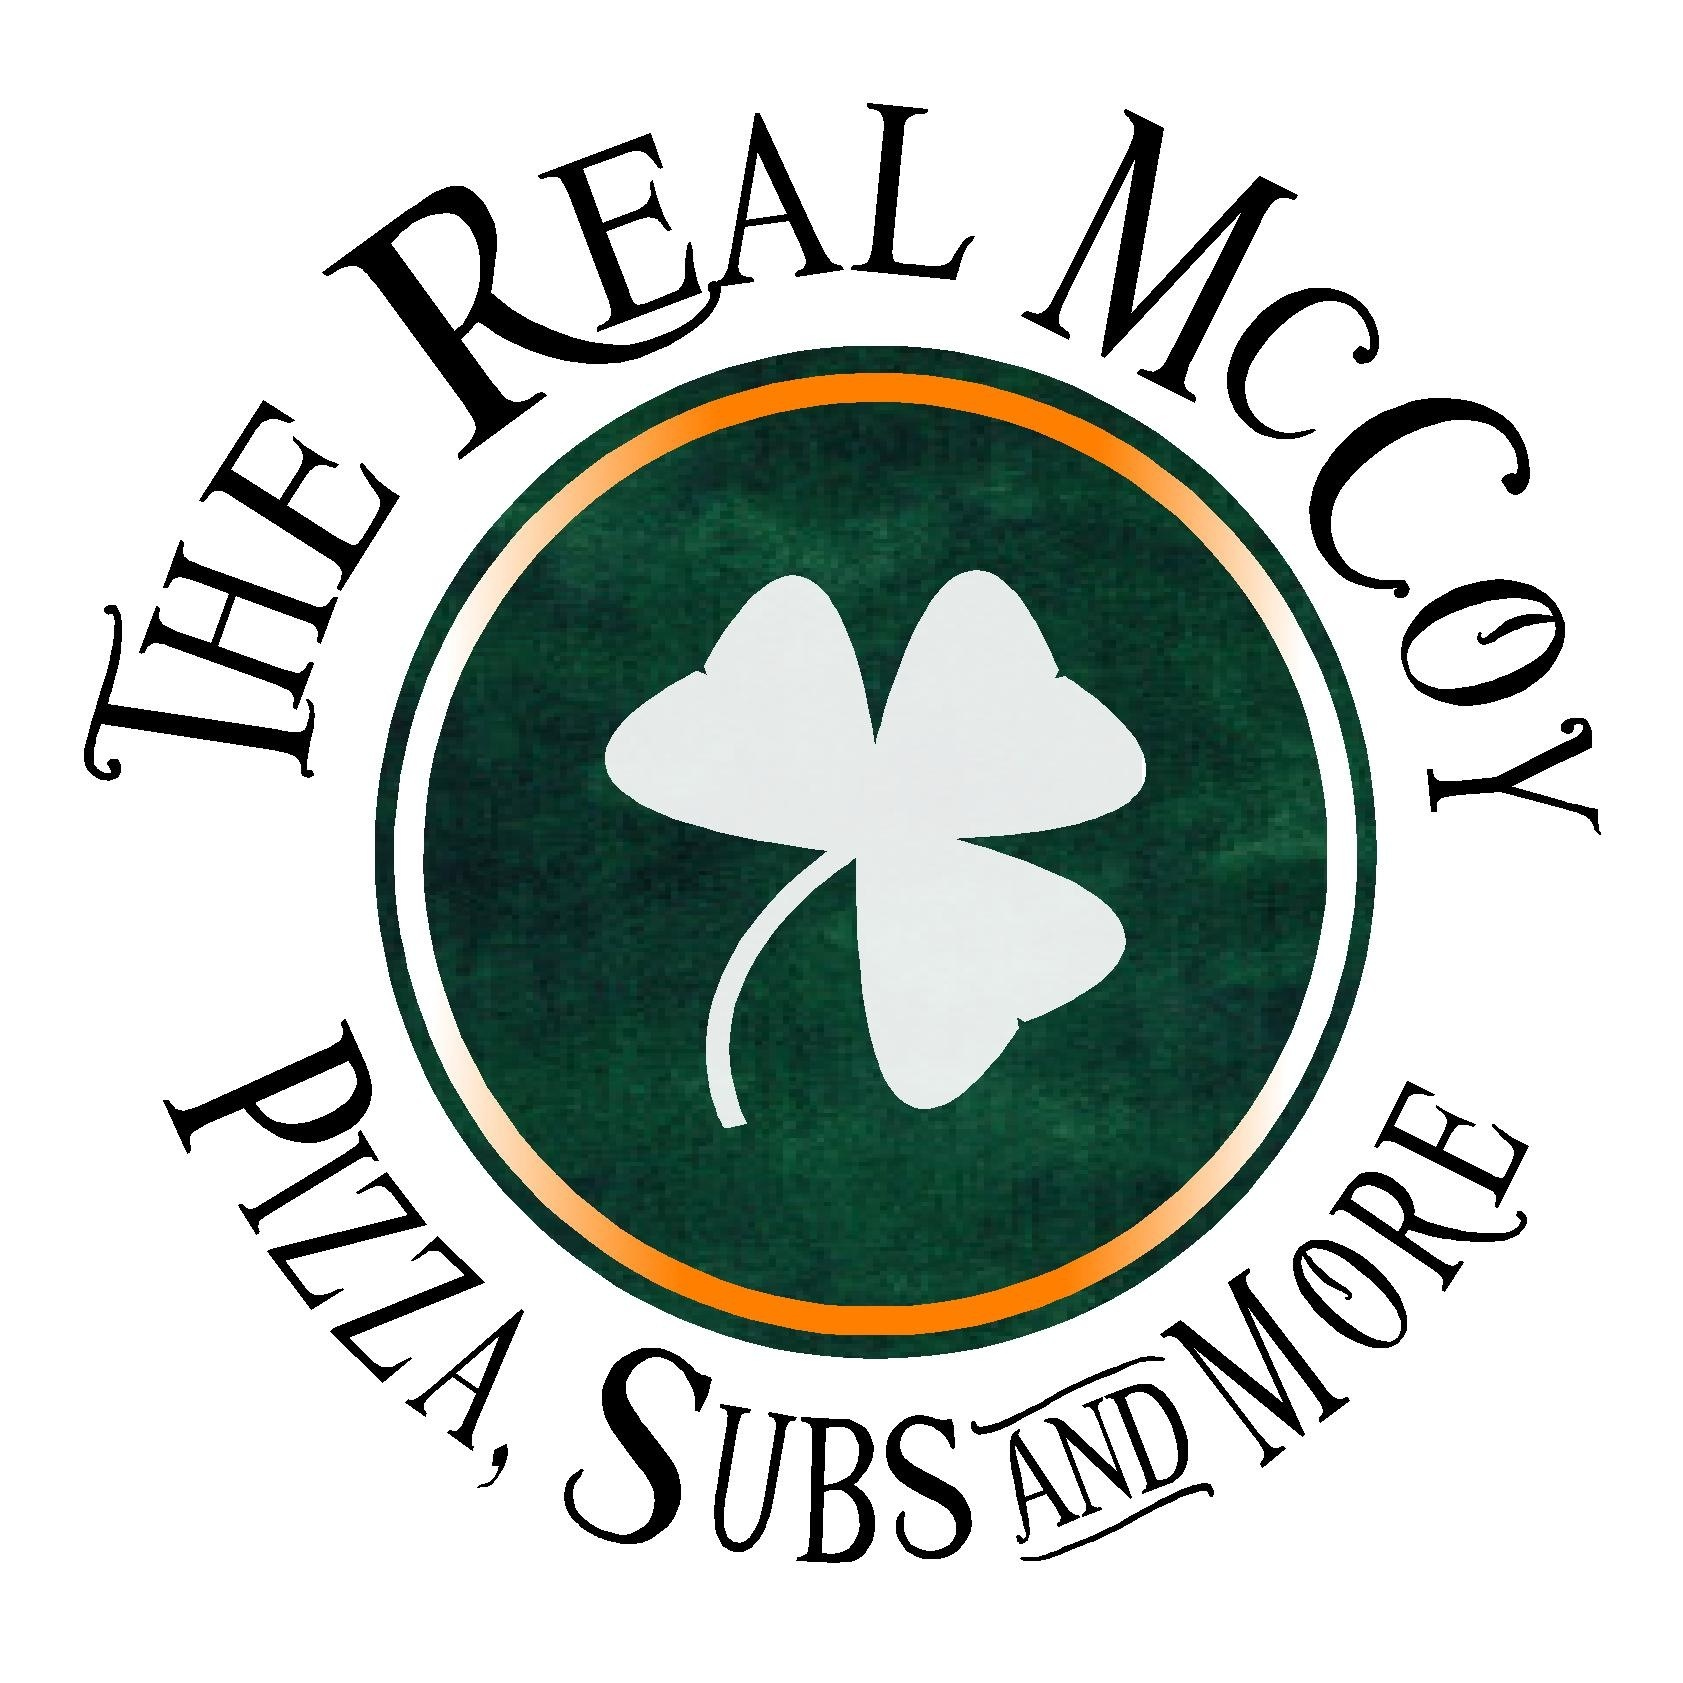 The Real McCoy Pizza, Subs & more